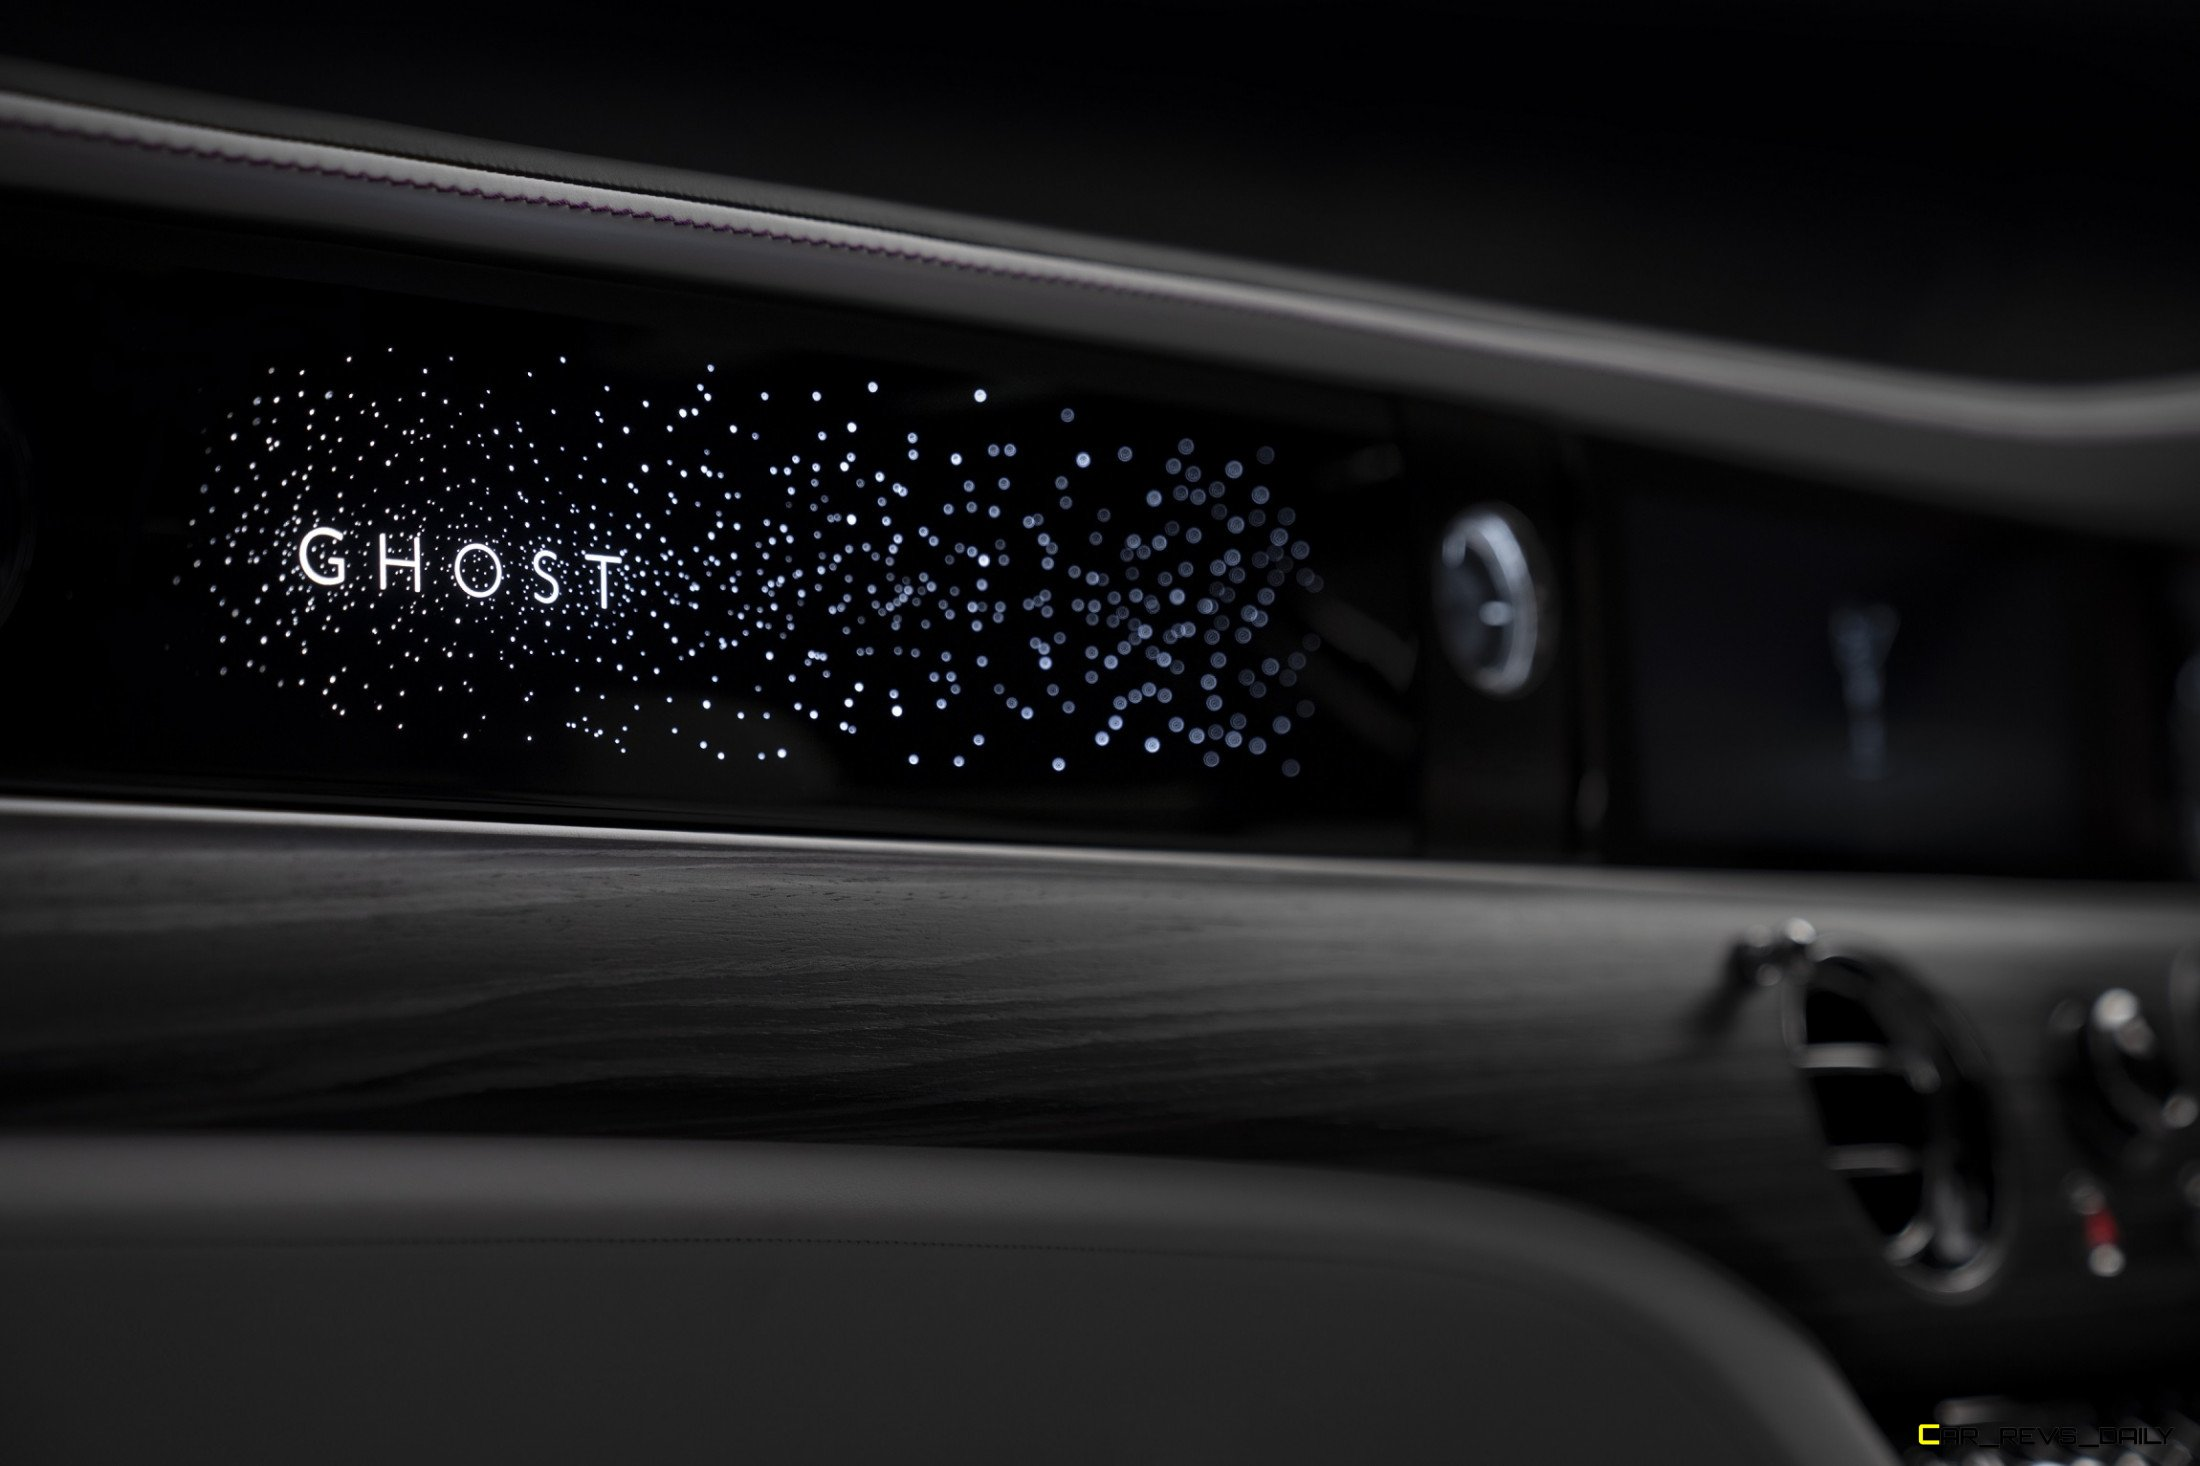 Rolls Royce Ghost To Debut September 1st Will Feature 152 Leds In Dashboard Video Latest News Car Revs Daily Com